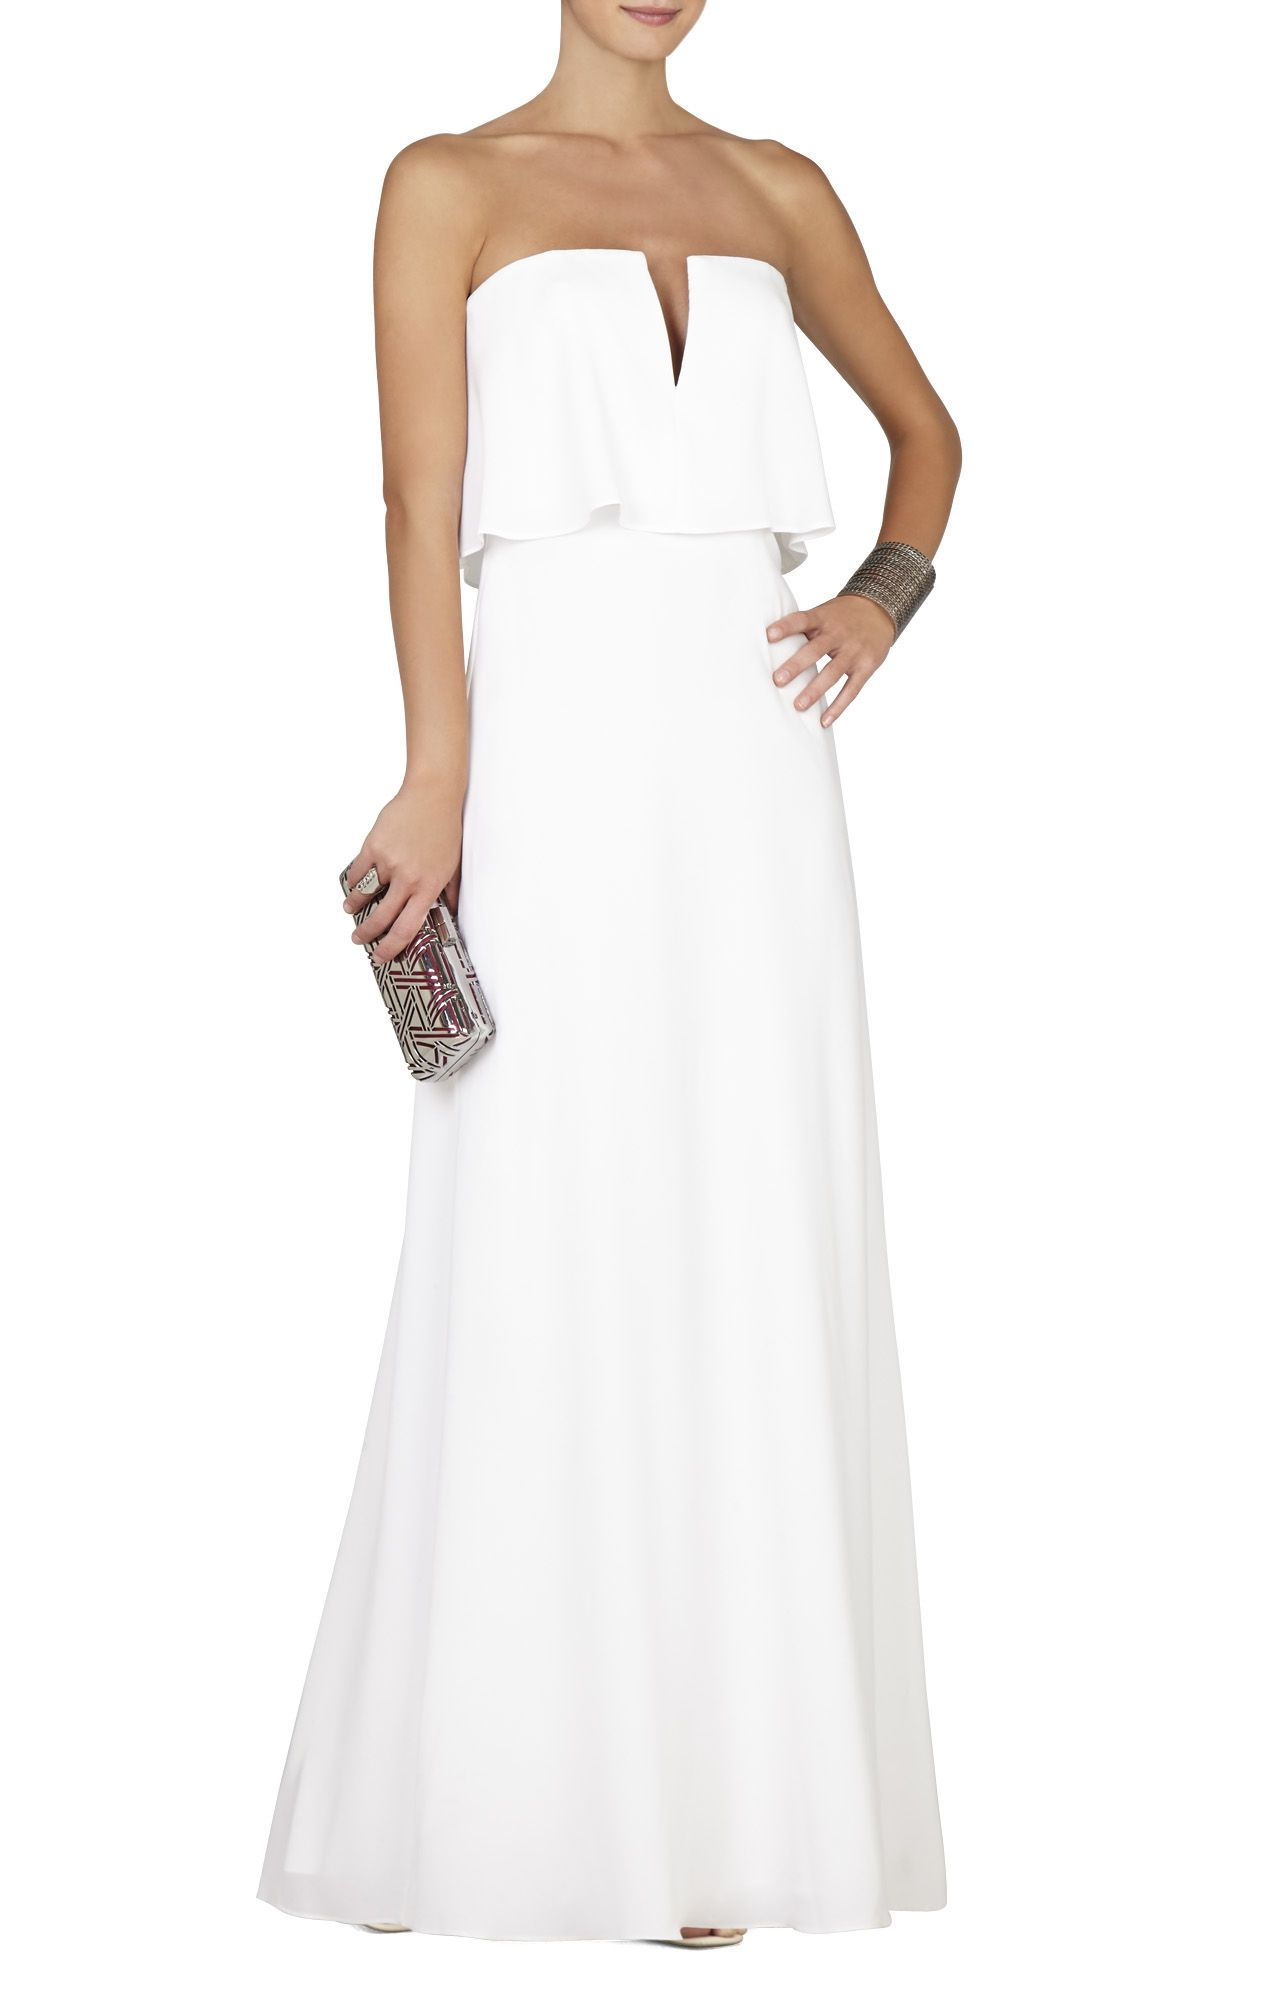 Alyse Strapless Overlay Gown | White Gala Outfit | Pinterest ...